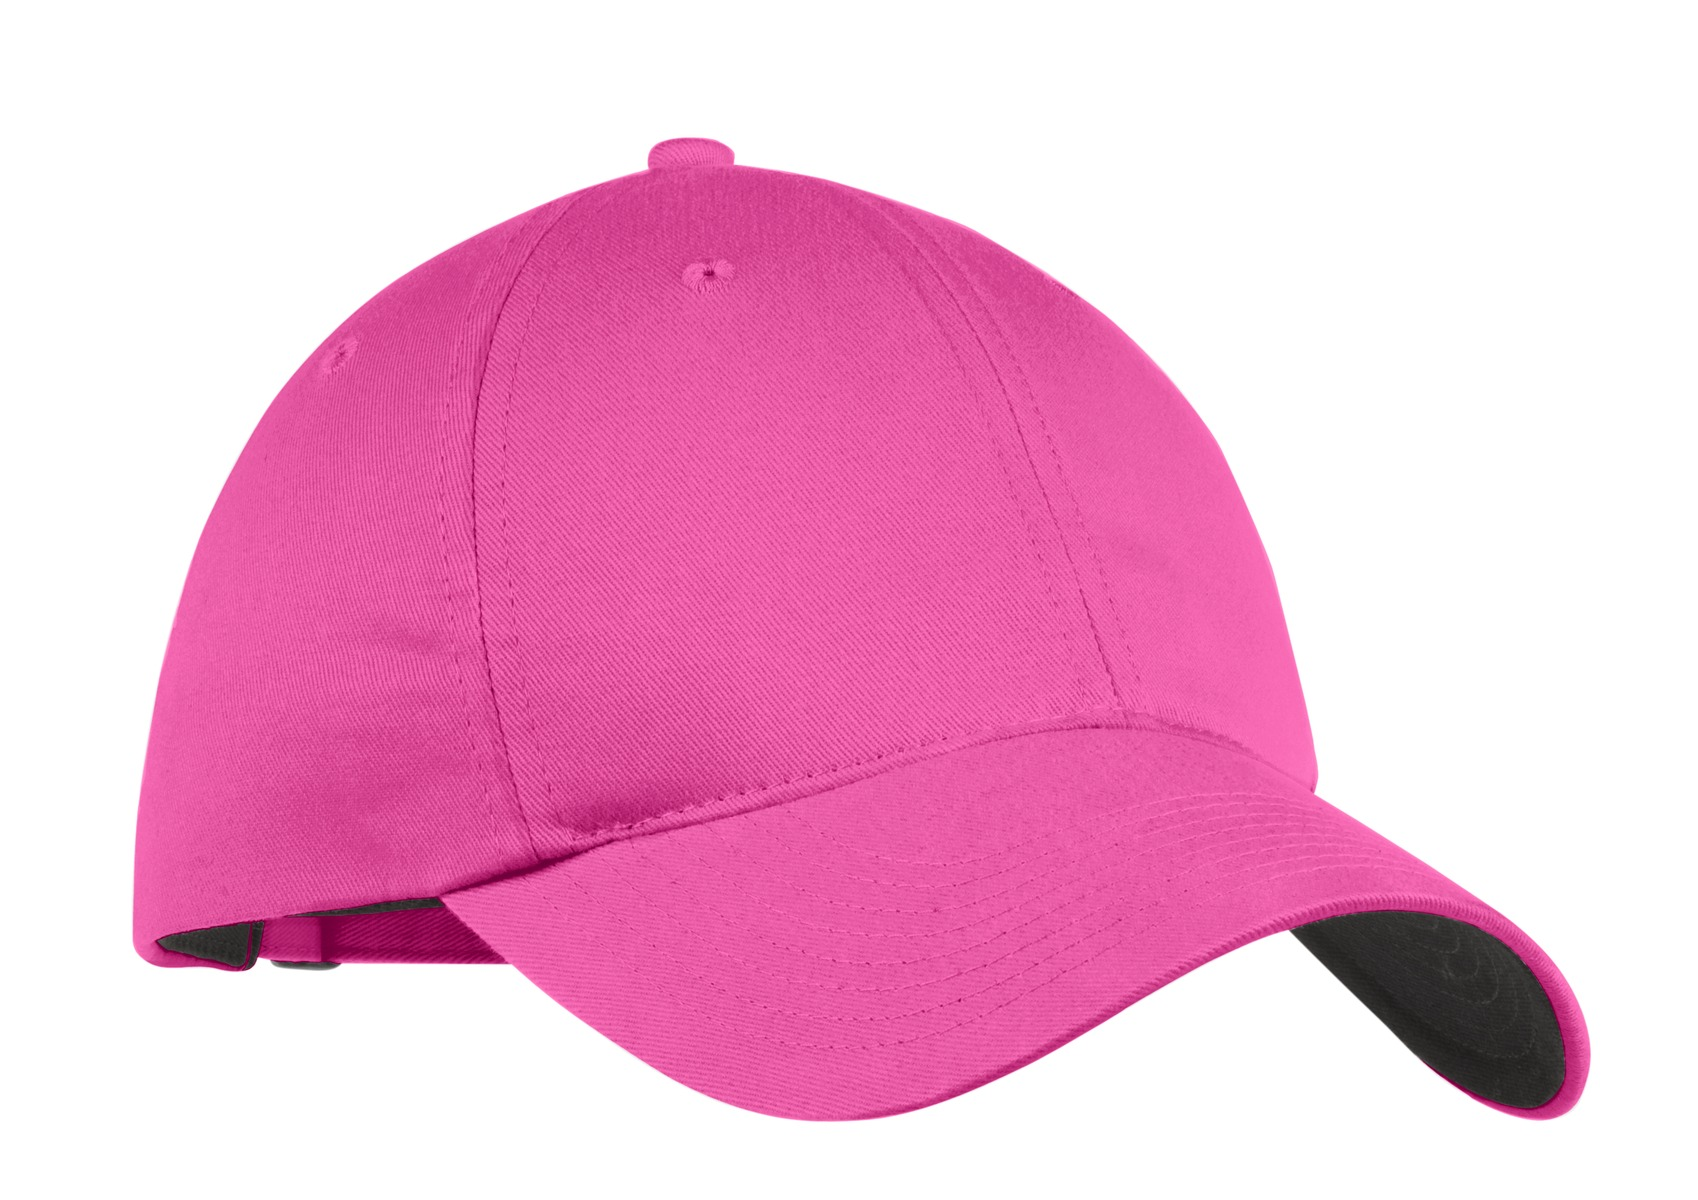 Nike Unstructured Twill Cap.  580087 - Fusion Pink